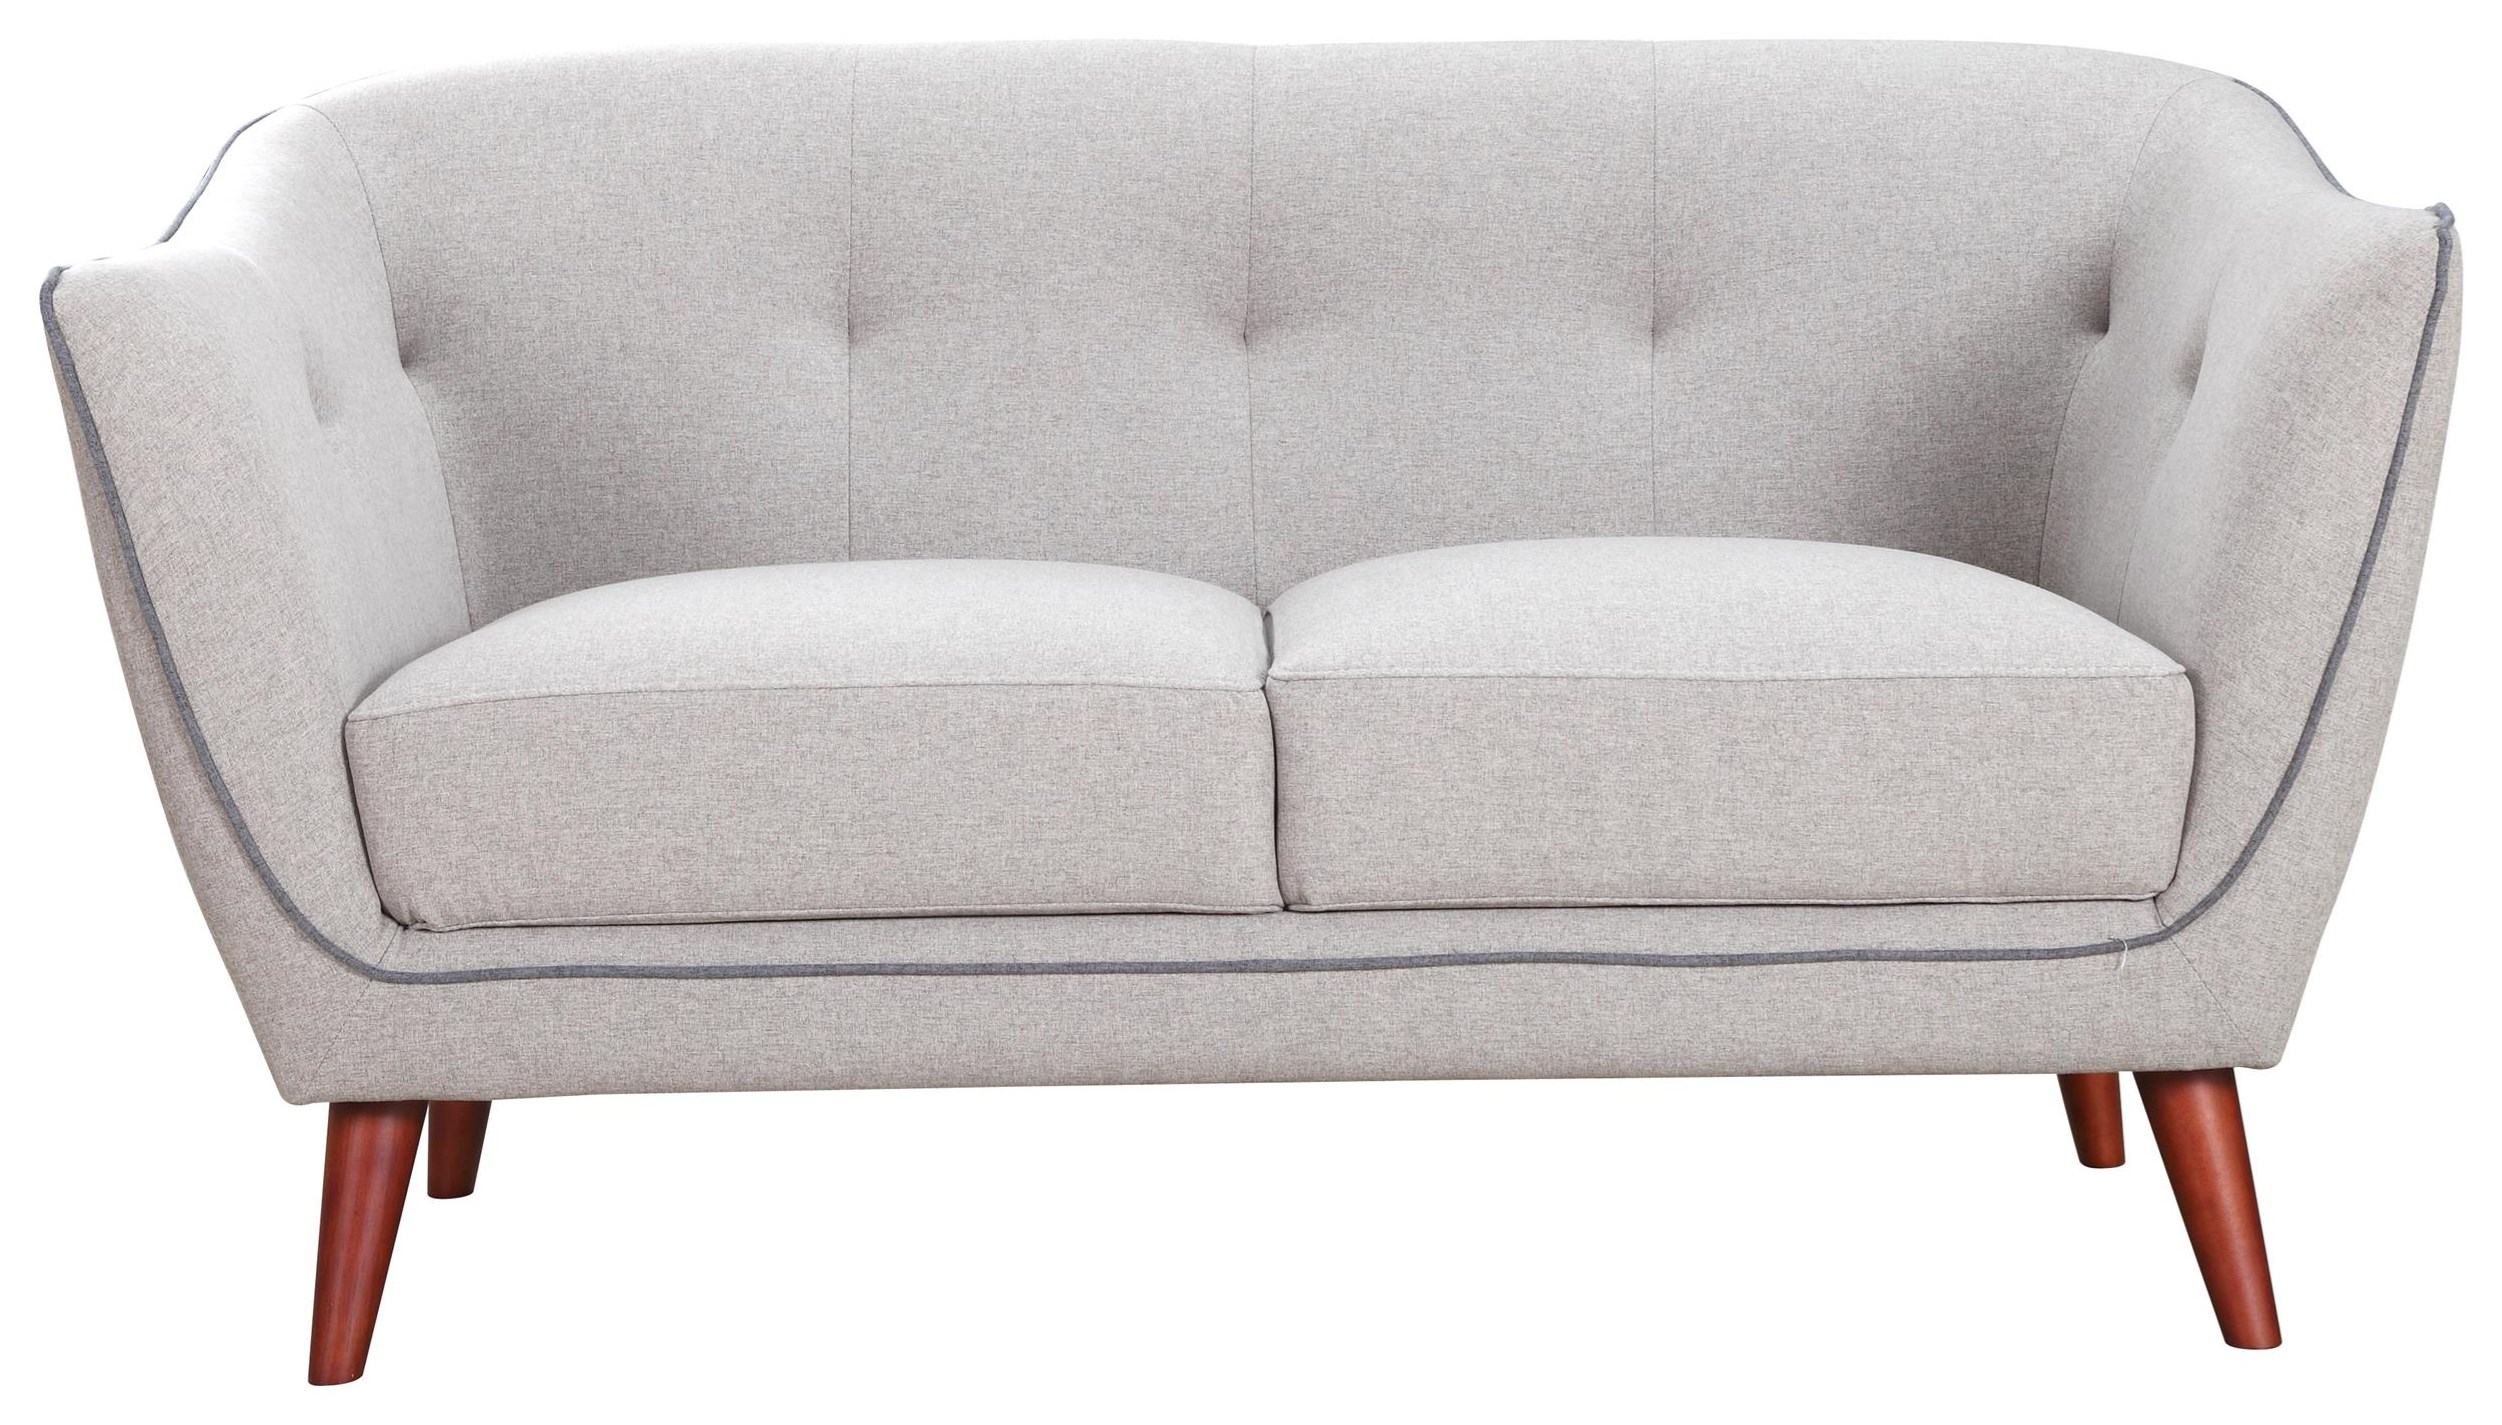 Avery Loveseat by Urban Chic at Beck's Furniture